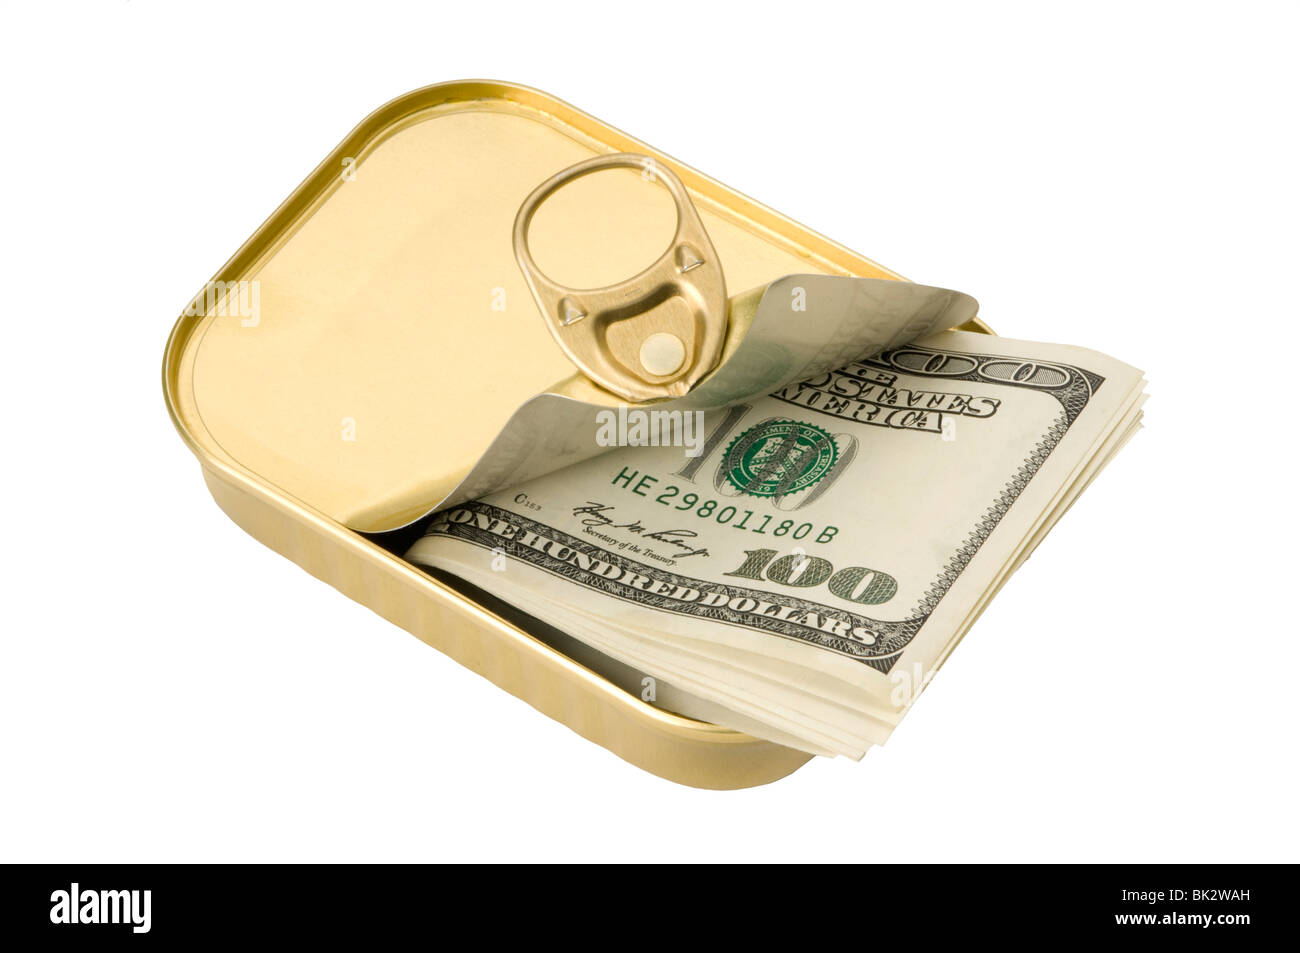 tin with money inside - Stock Image